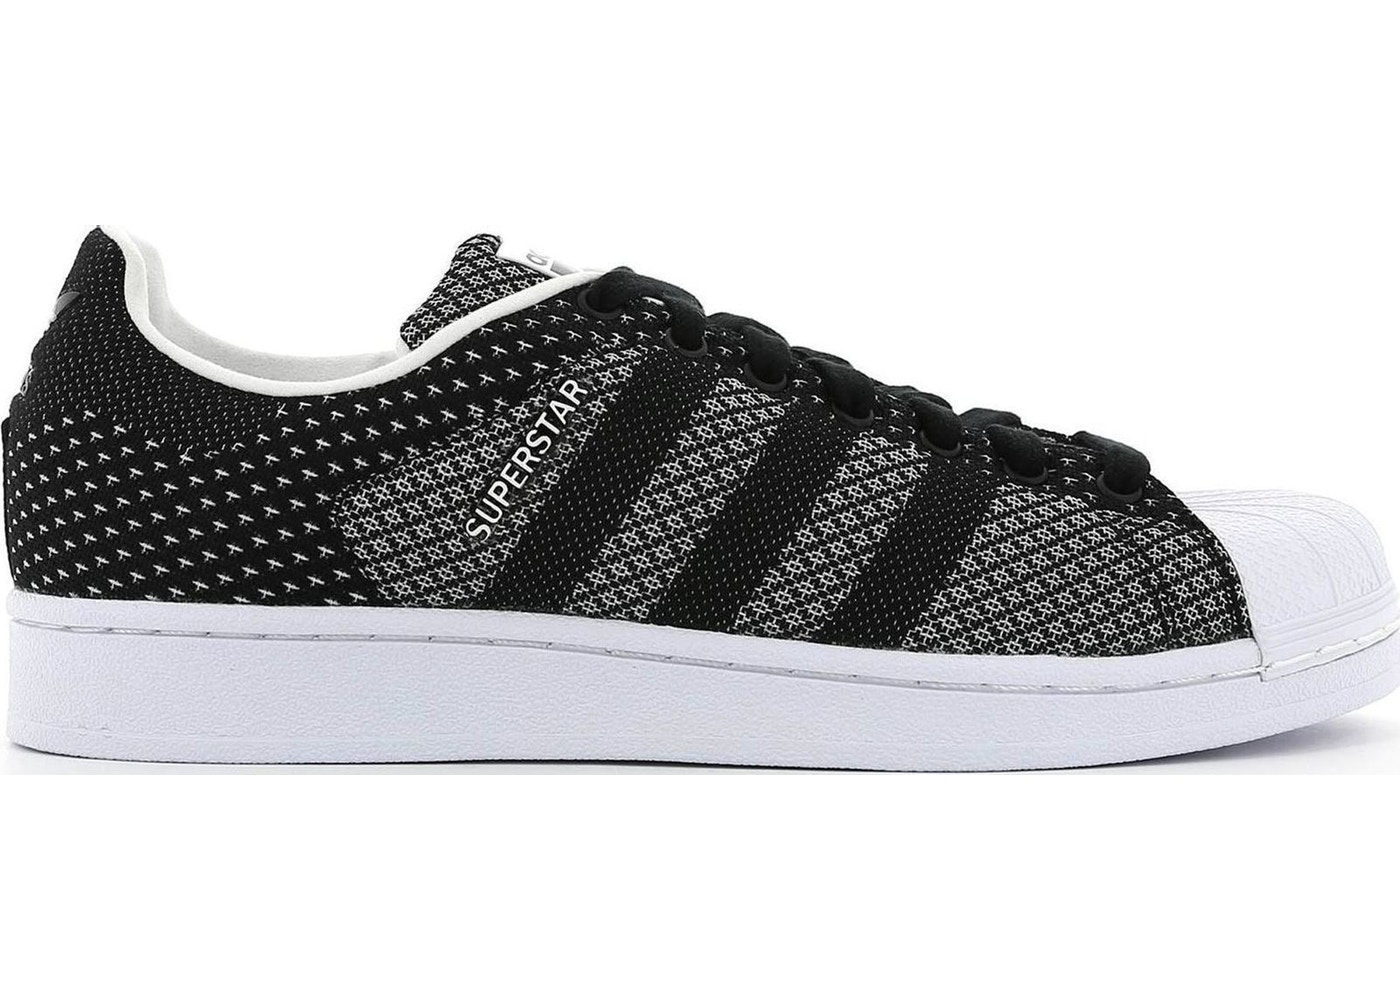 reputable site a23ab cace2 adidas Superstar Weave Black - S75177